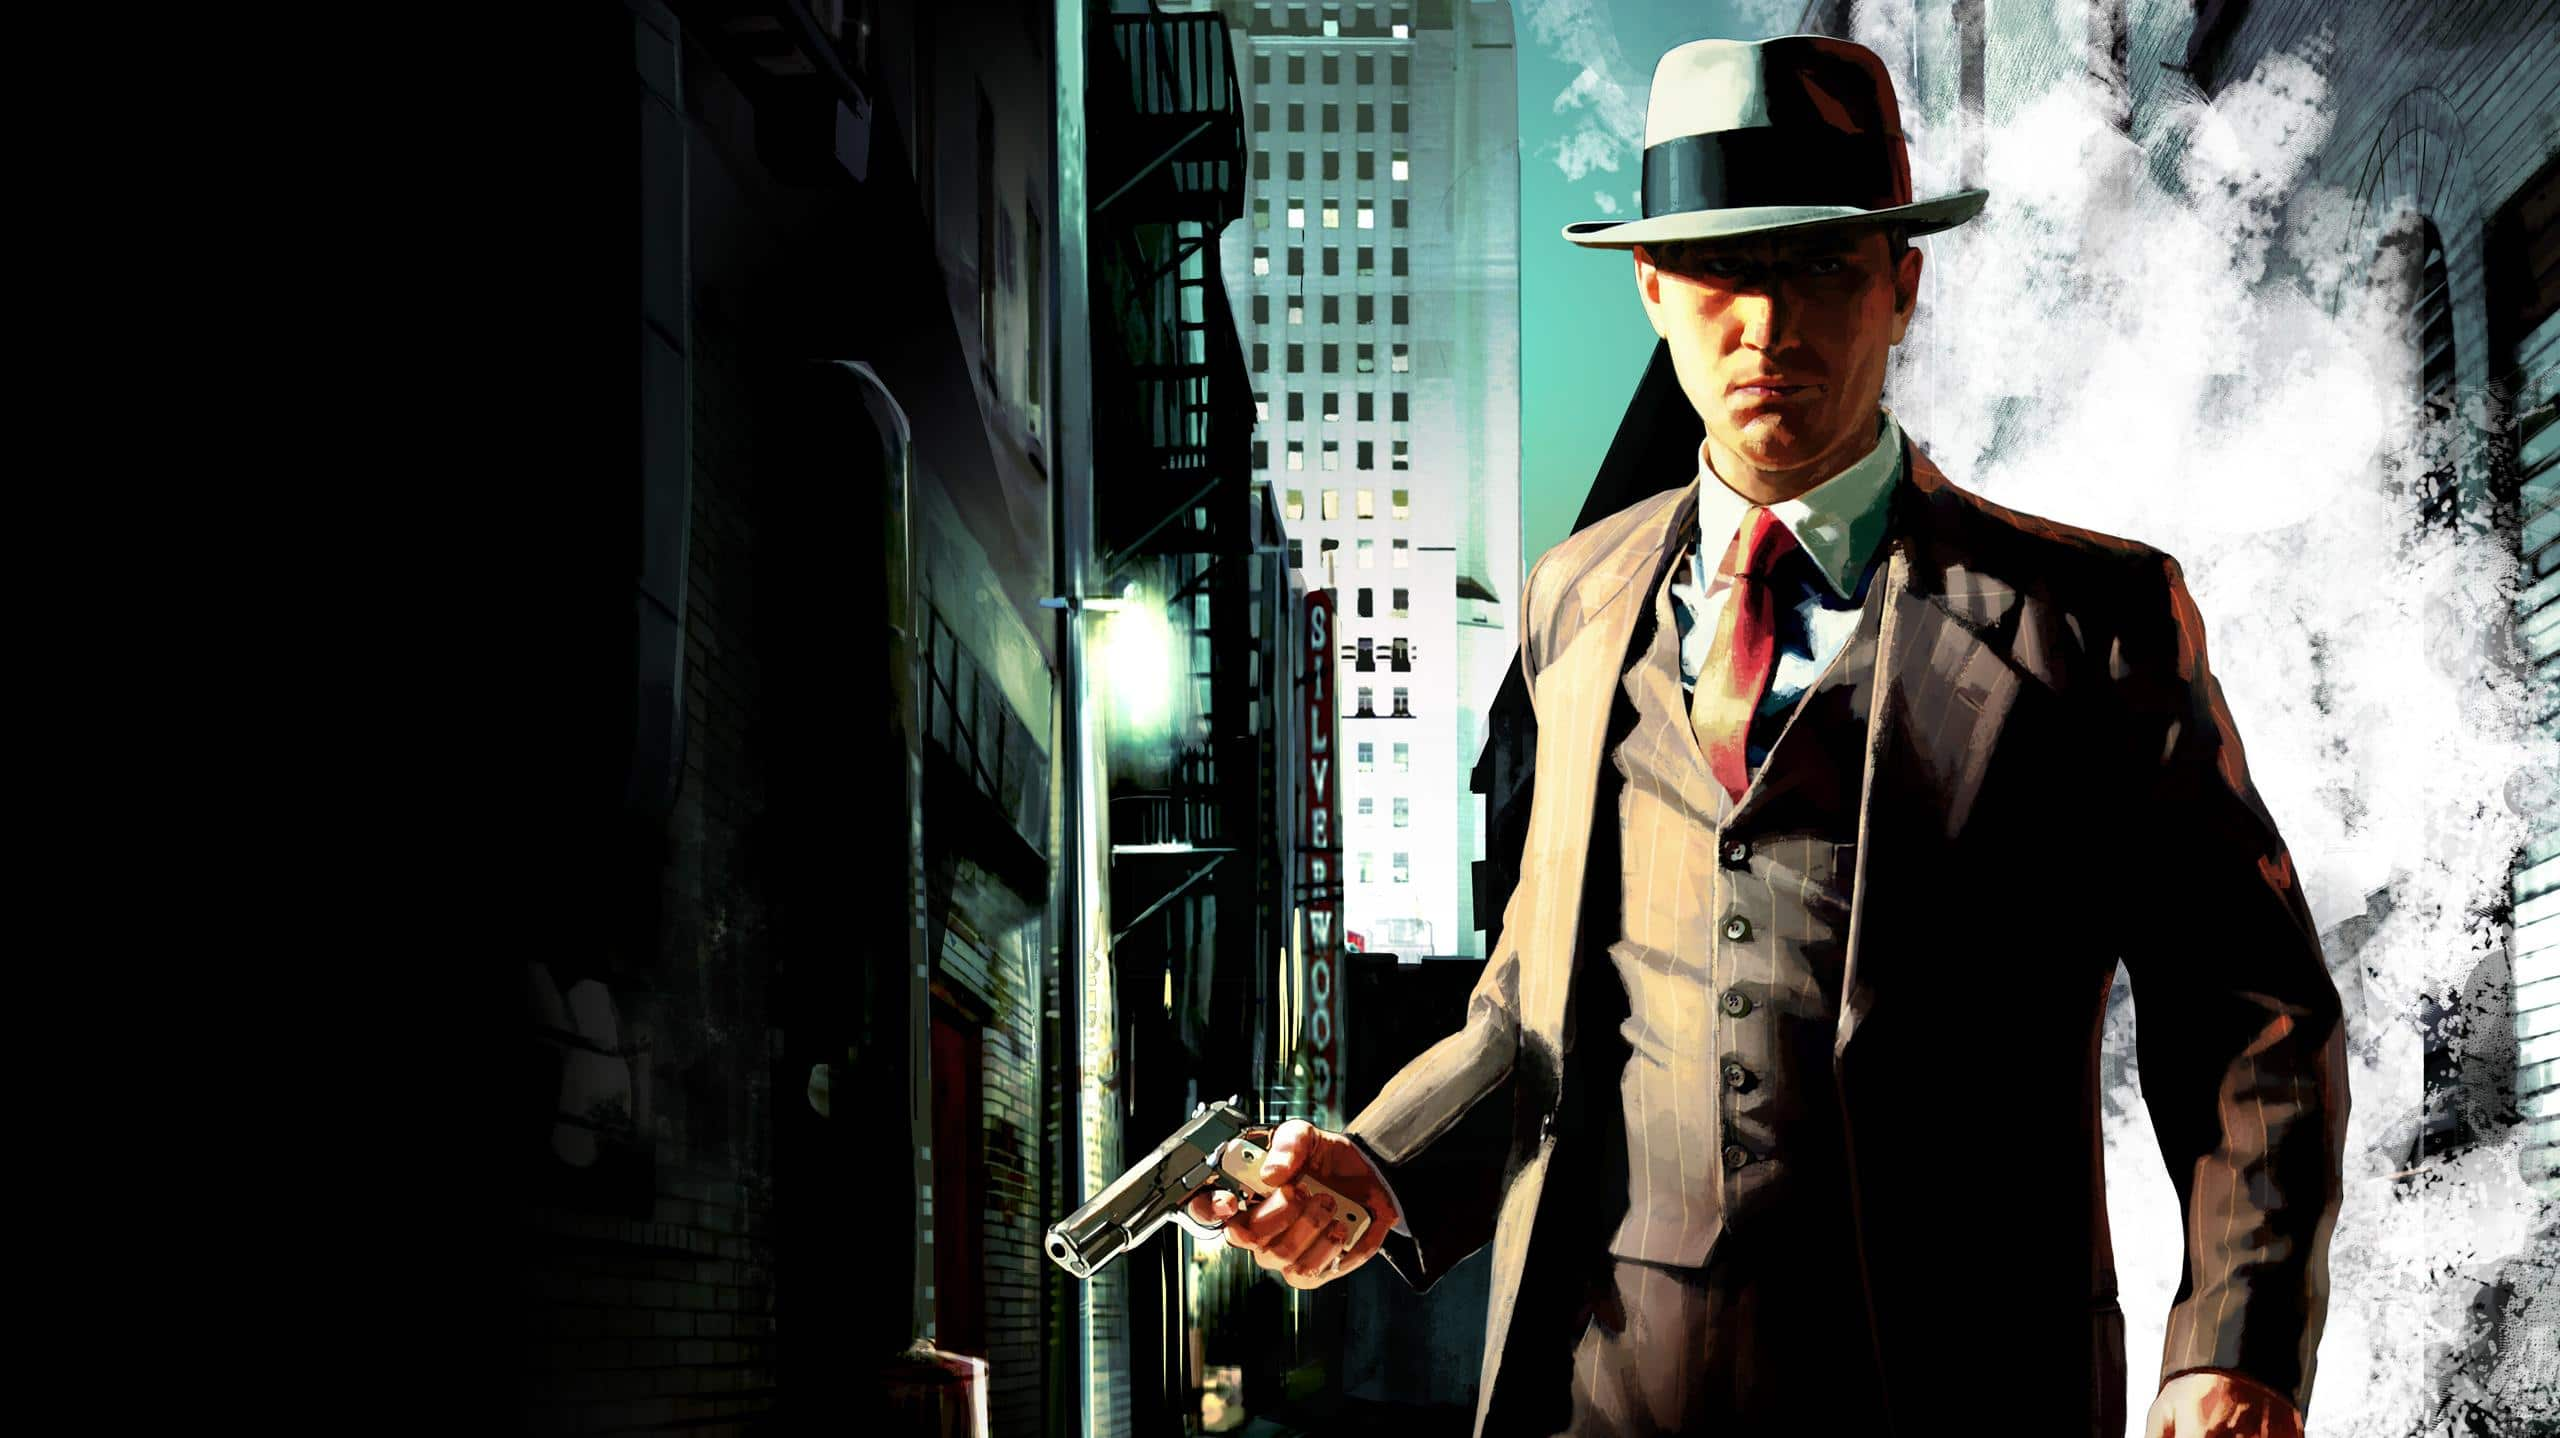 VIRTUOS PARTNERED WITH ROCKSTAR GAMES TO BRING THE ENHANCED VERSION OF L.A. NOIRE ON SWICH, PLAYSTATION 4, XBOX ONE AND VR